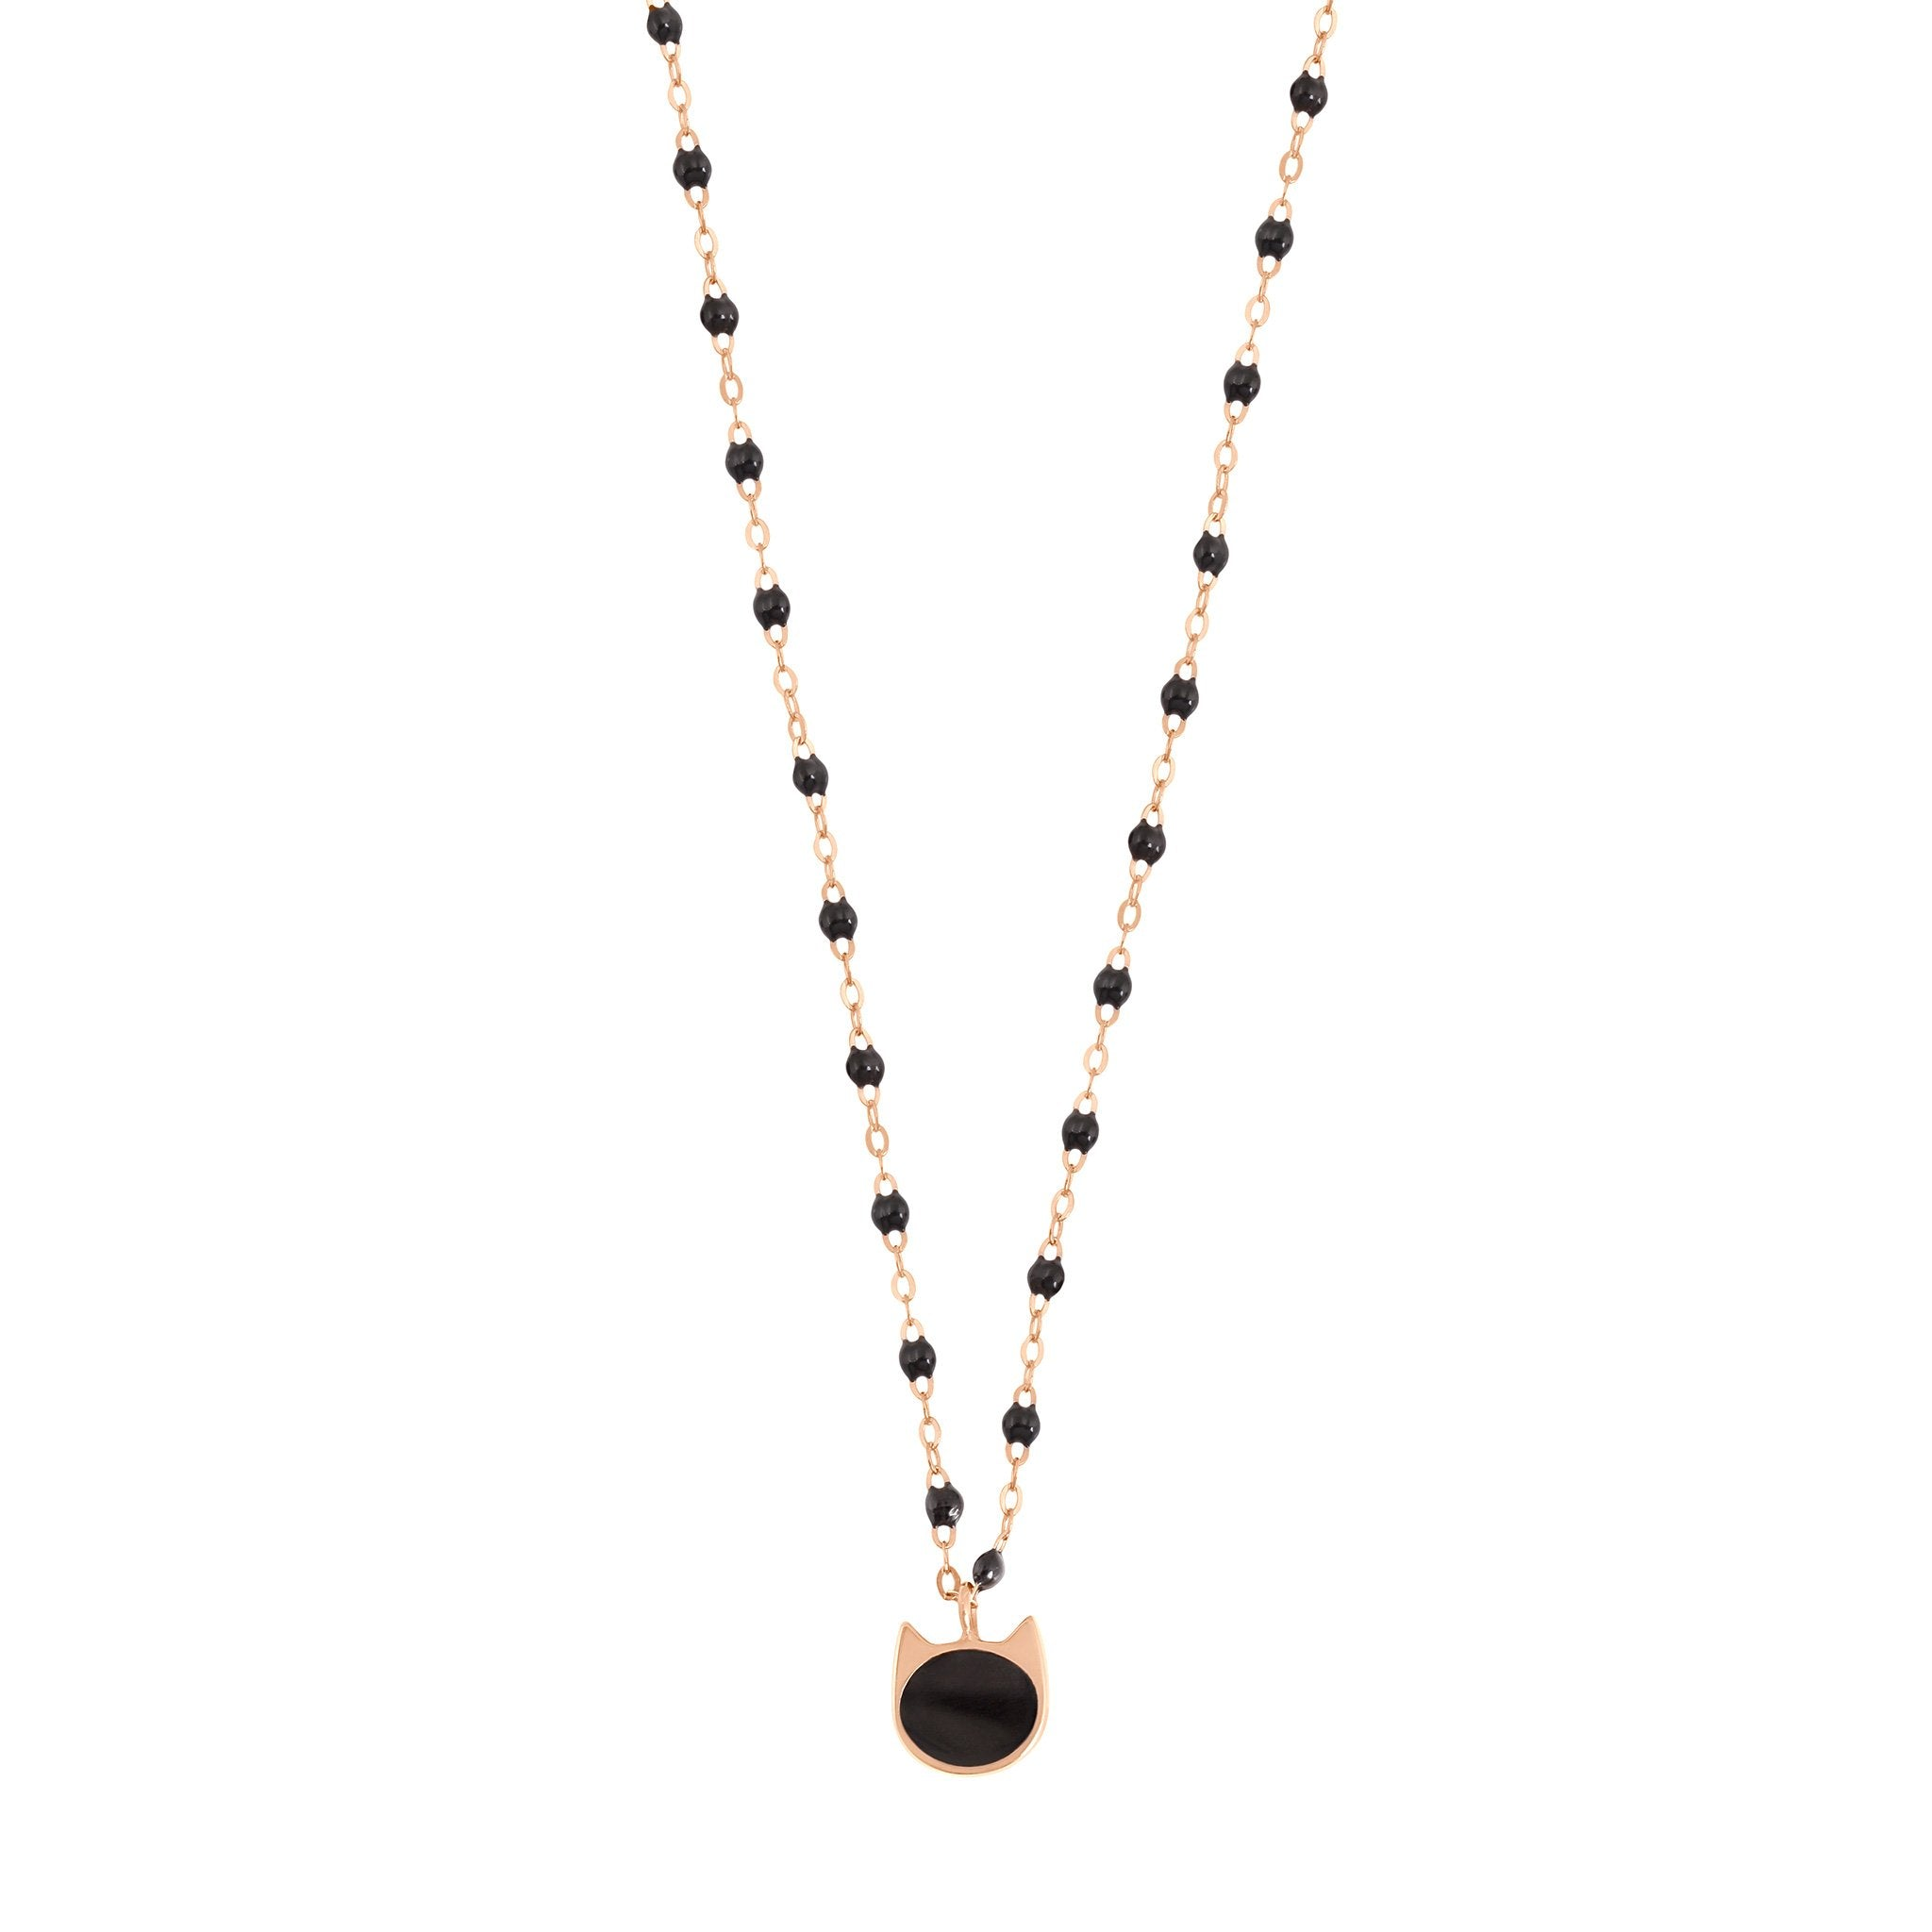 Gigi Clozeau - Cat Classic Gigi Black necklace, Rose Gold, 16.5""